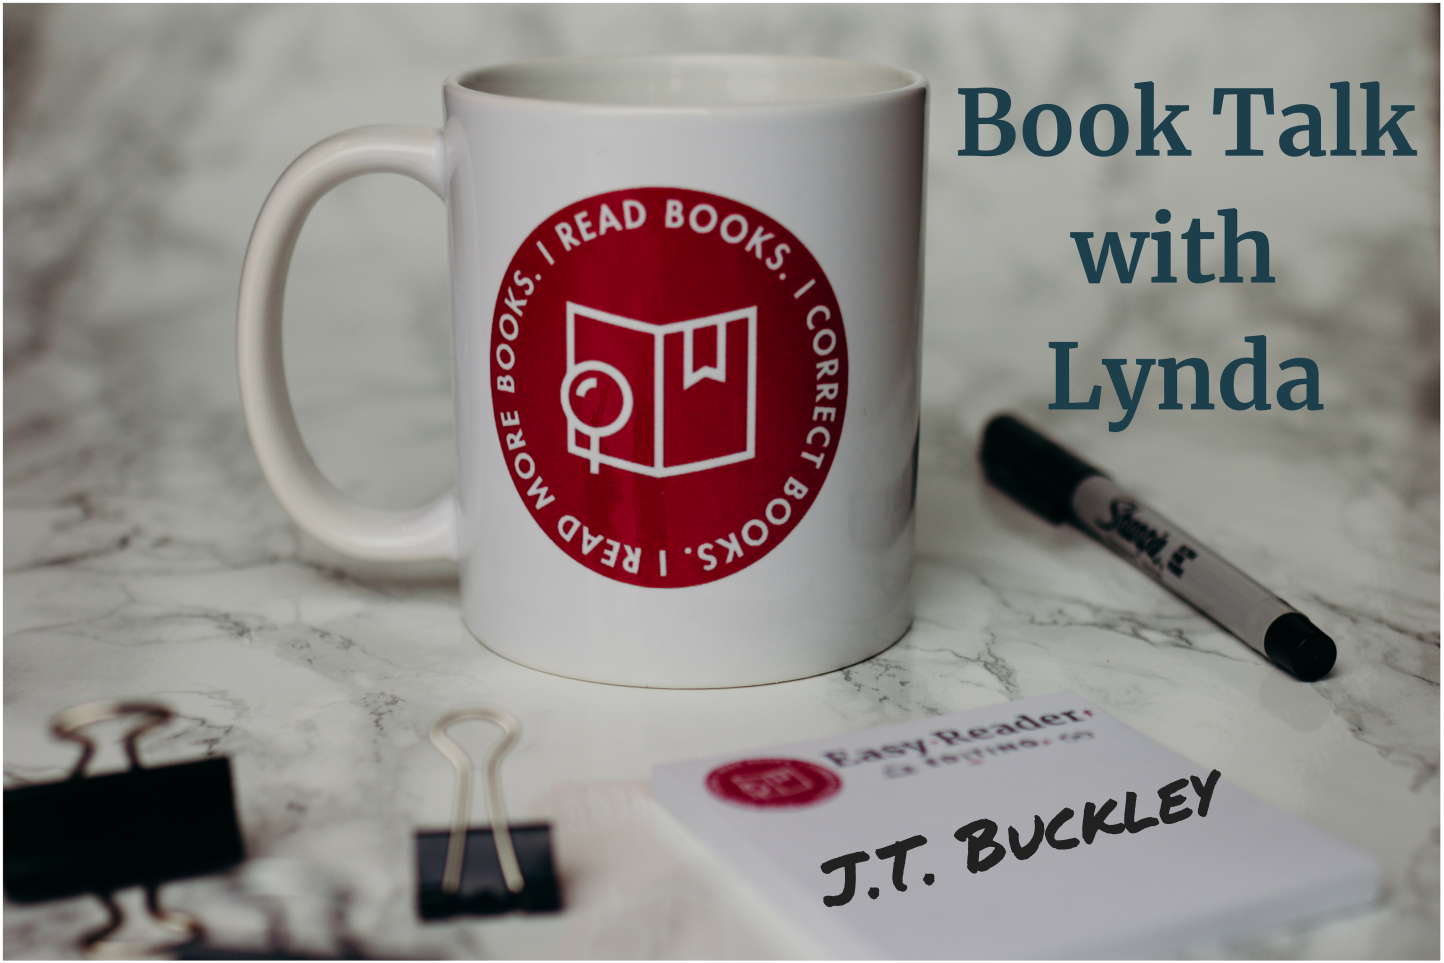 Book Talk with Lynda mug and post-it with JT Buckley